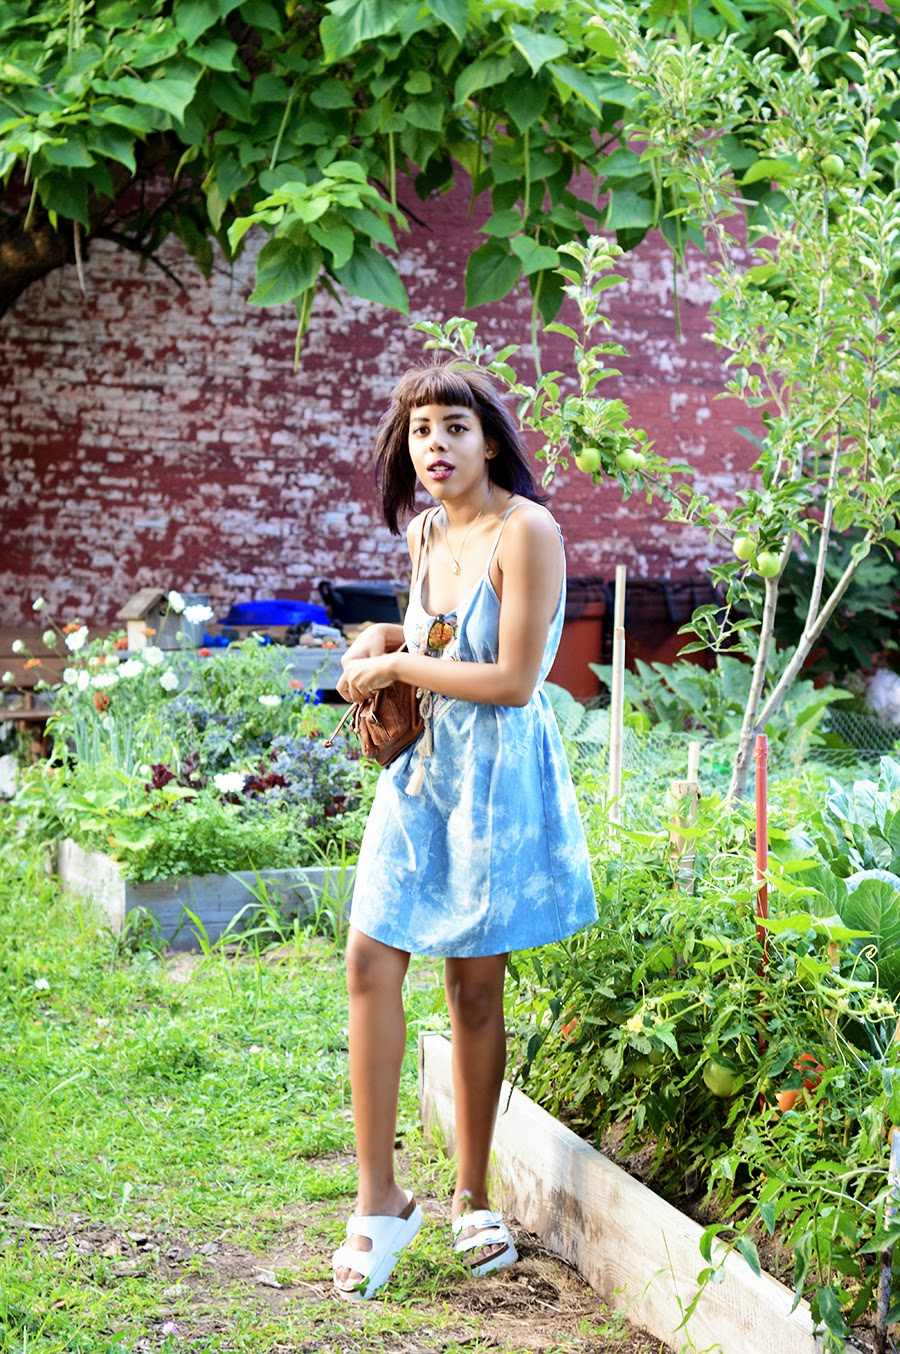 Indie fashion blogger Anais Alexandre of Down to Stars in a Summery vintage outfit with platform slides by topshop